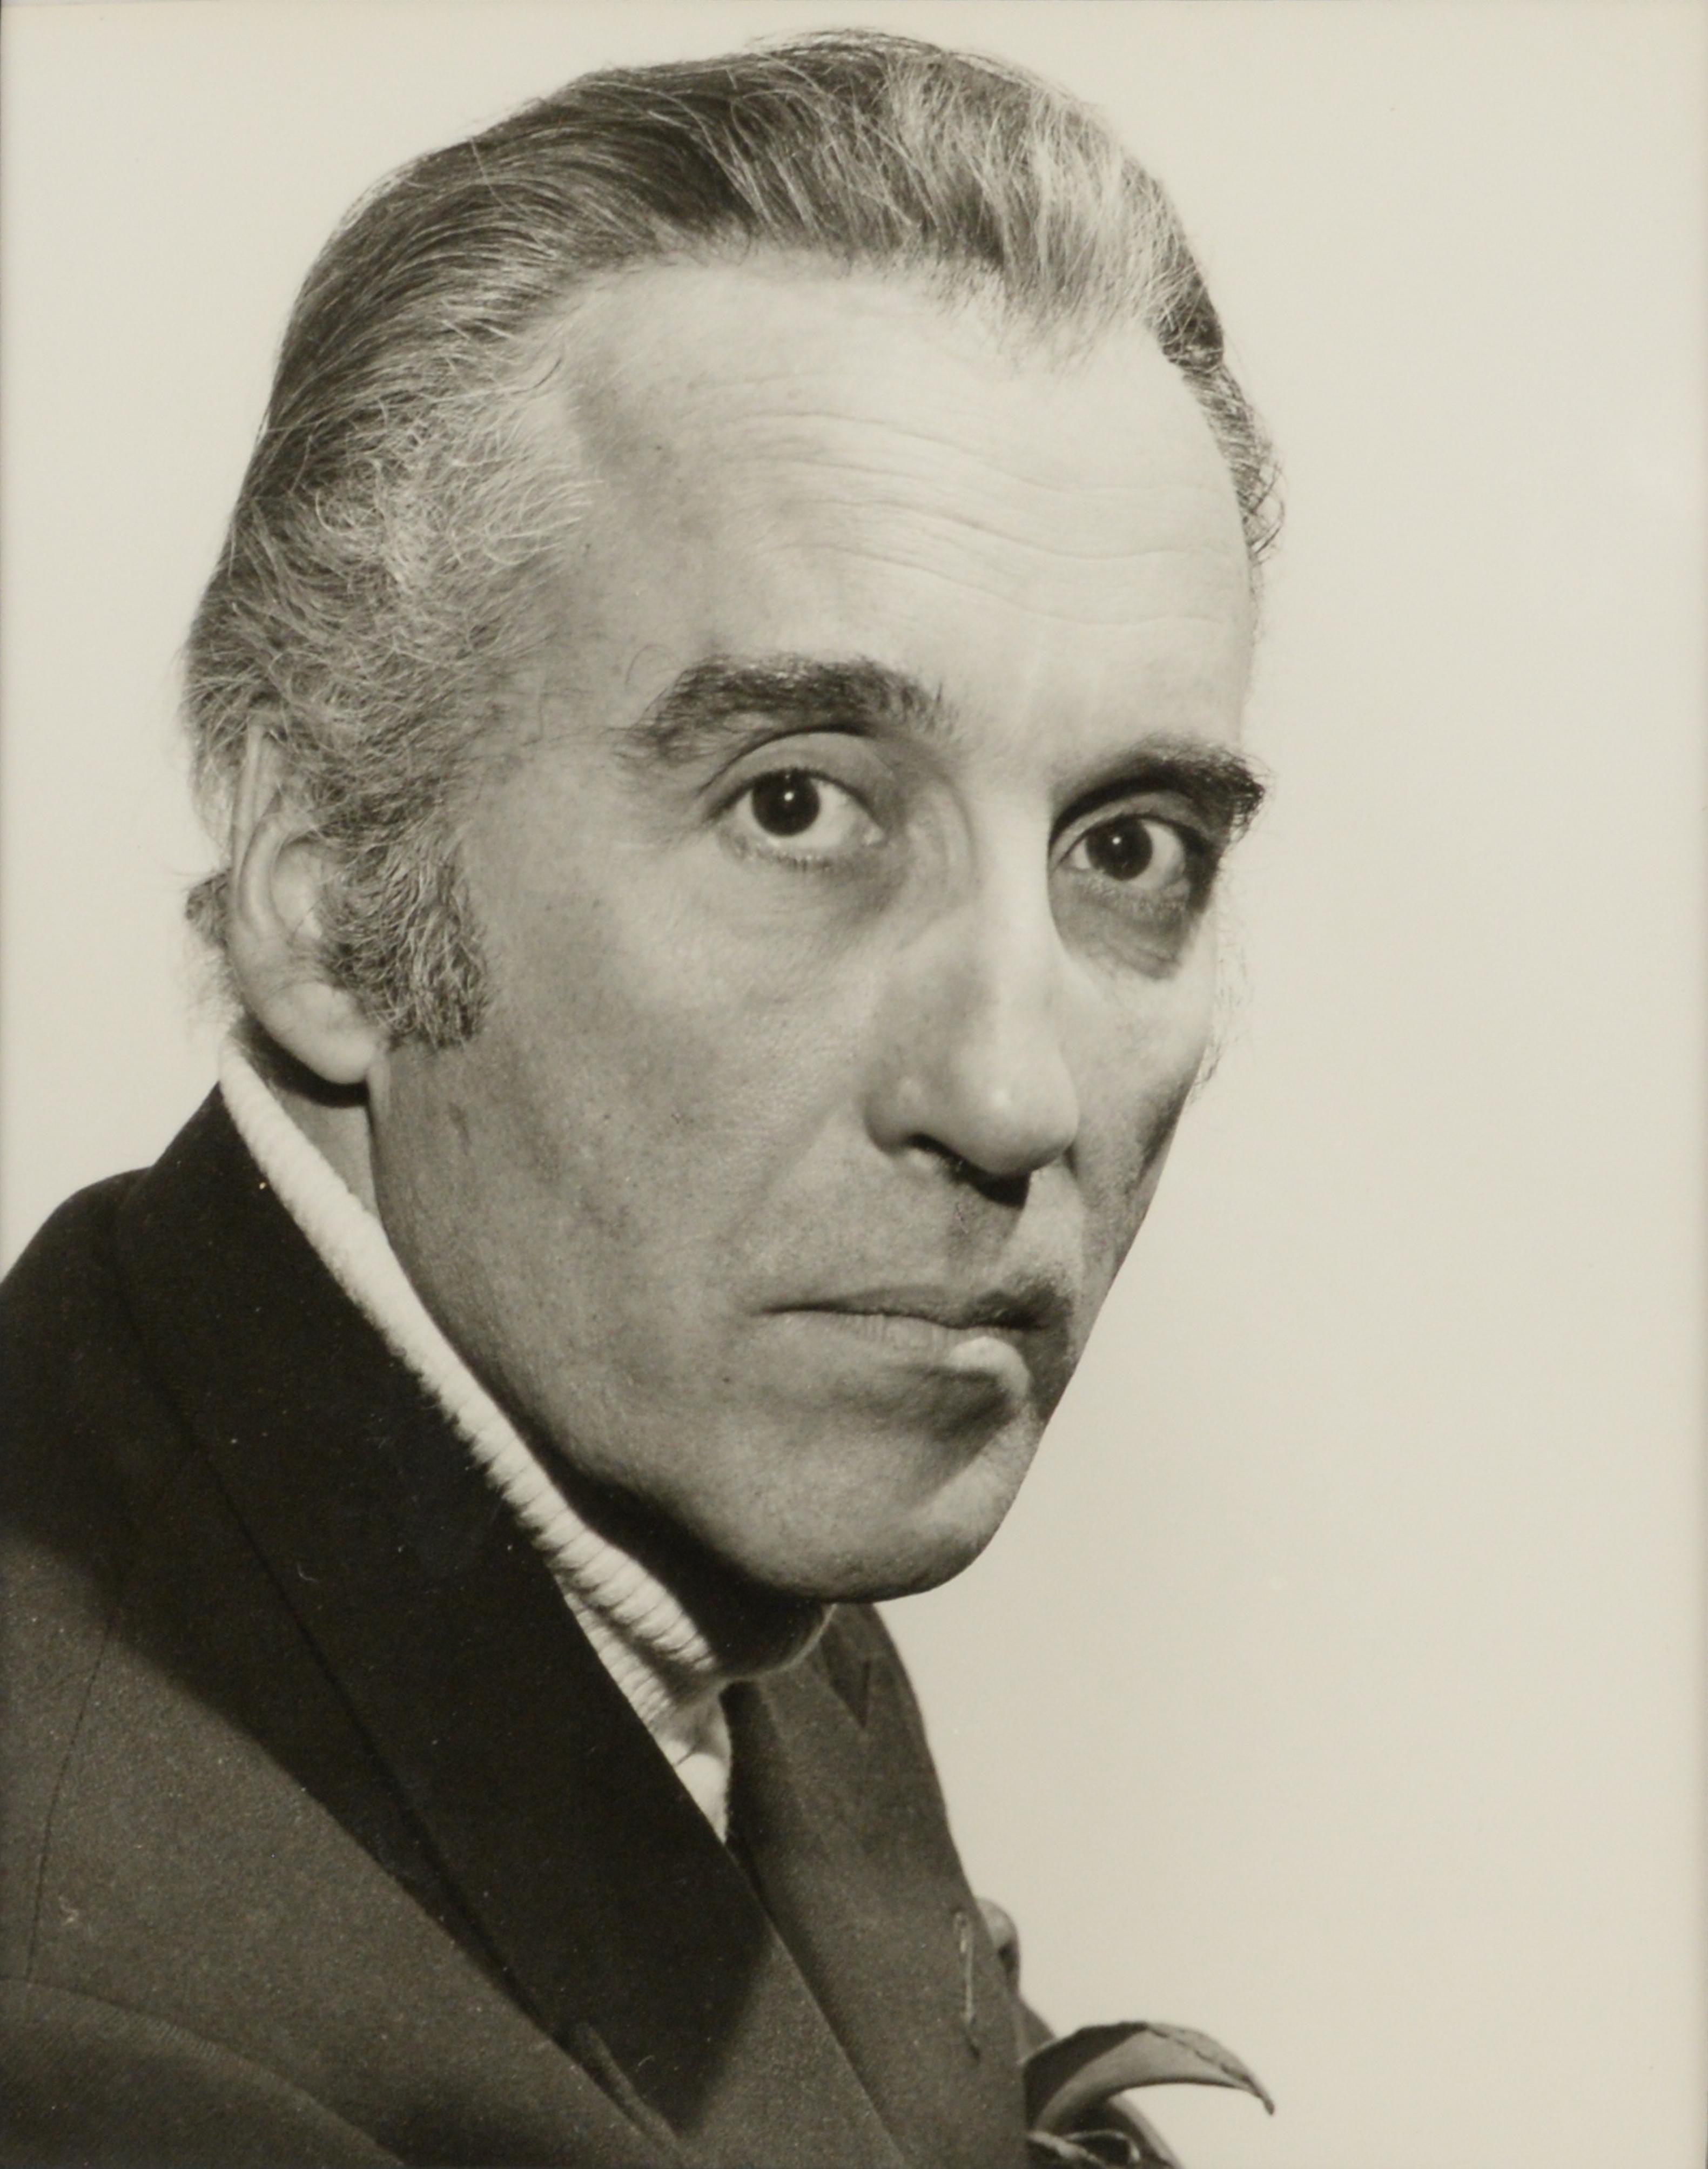 christopher lee song